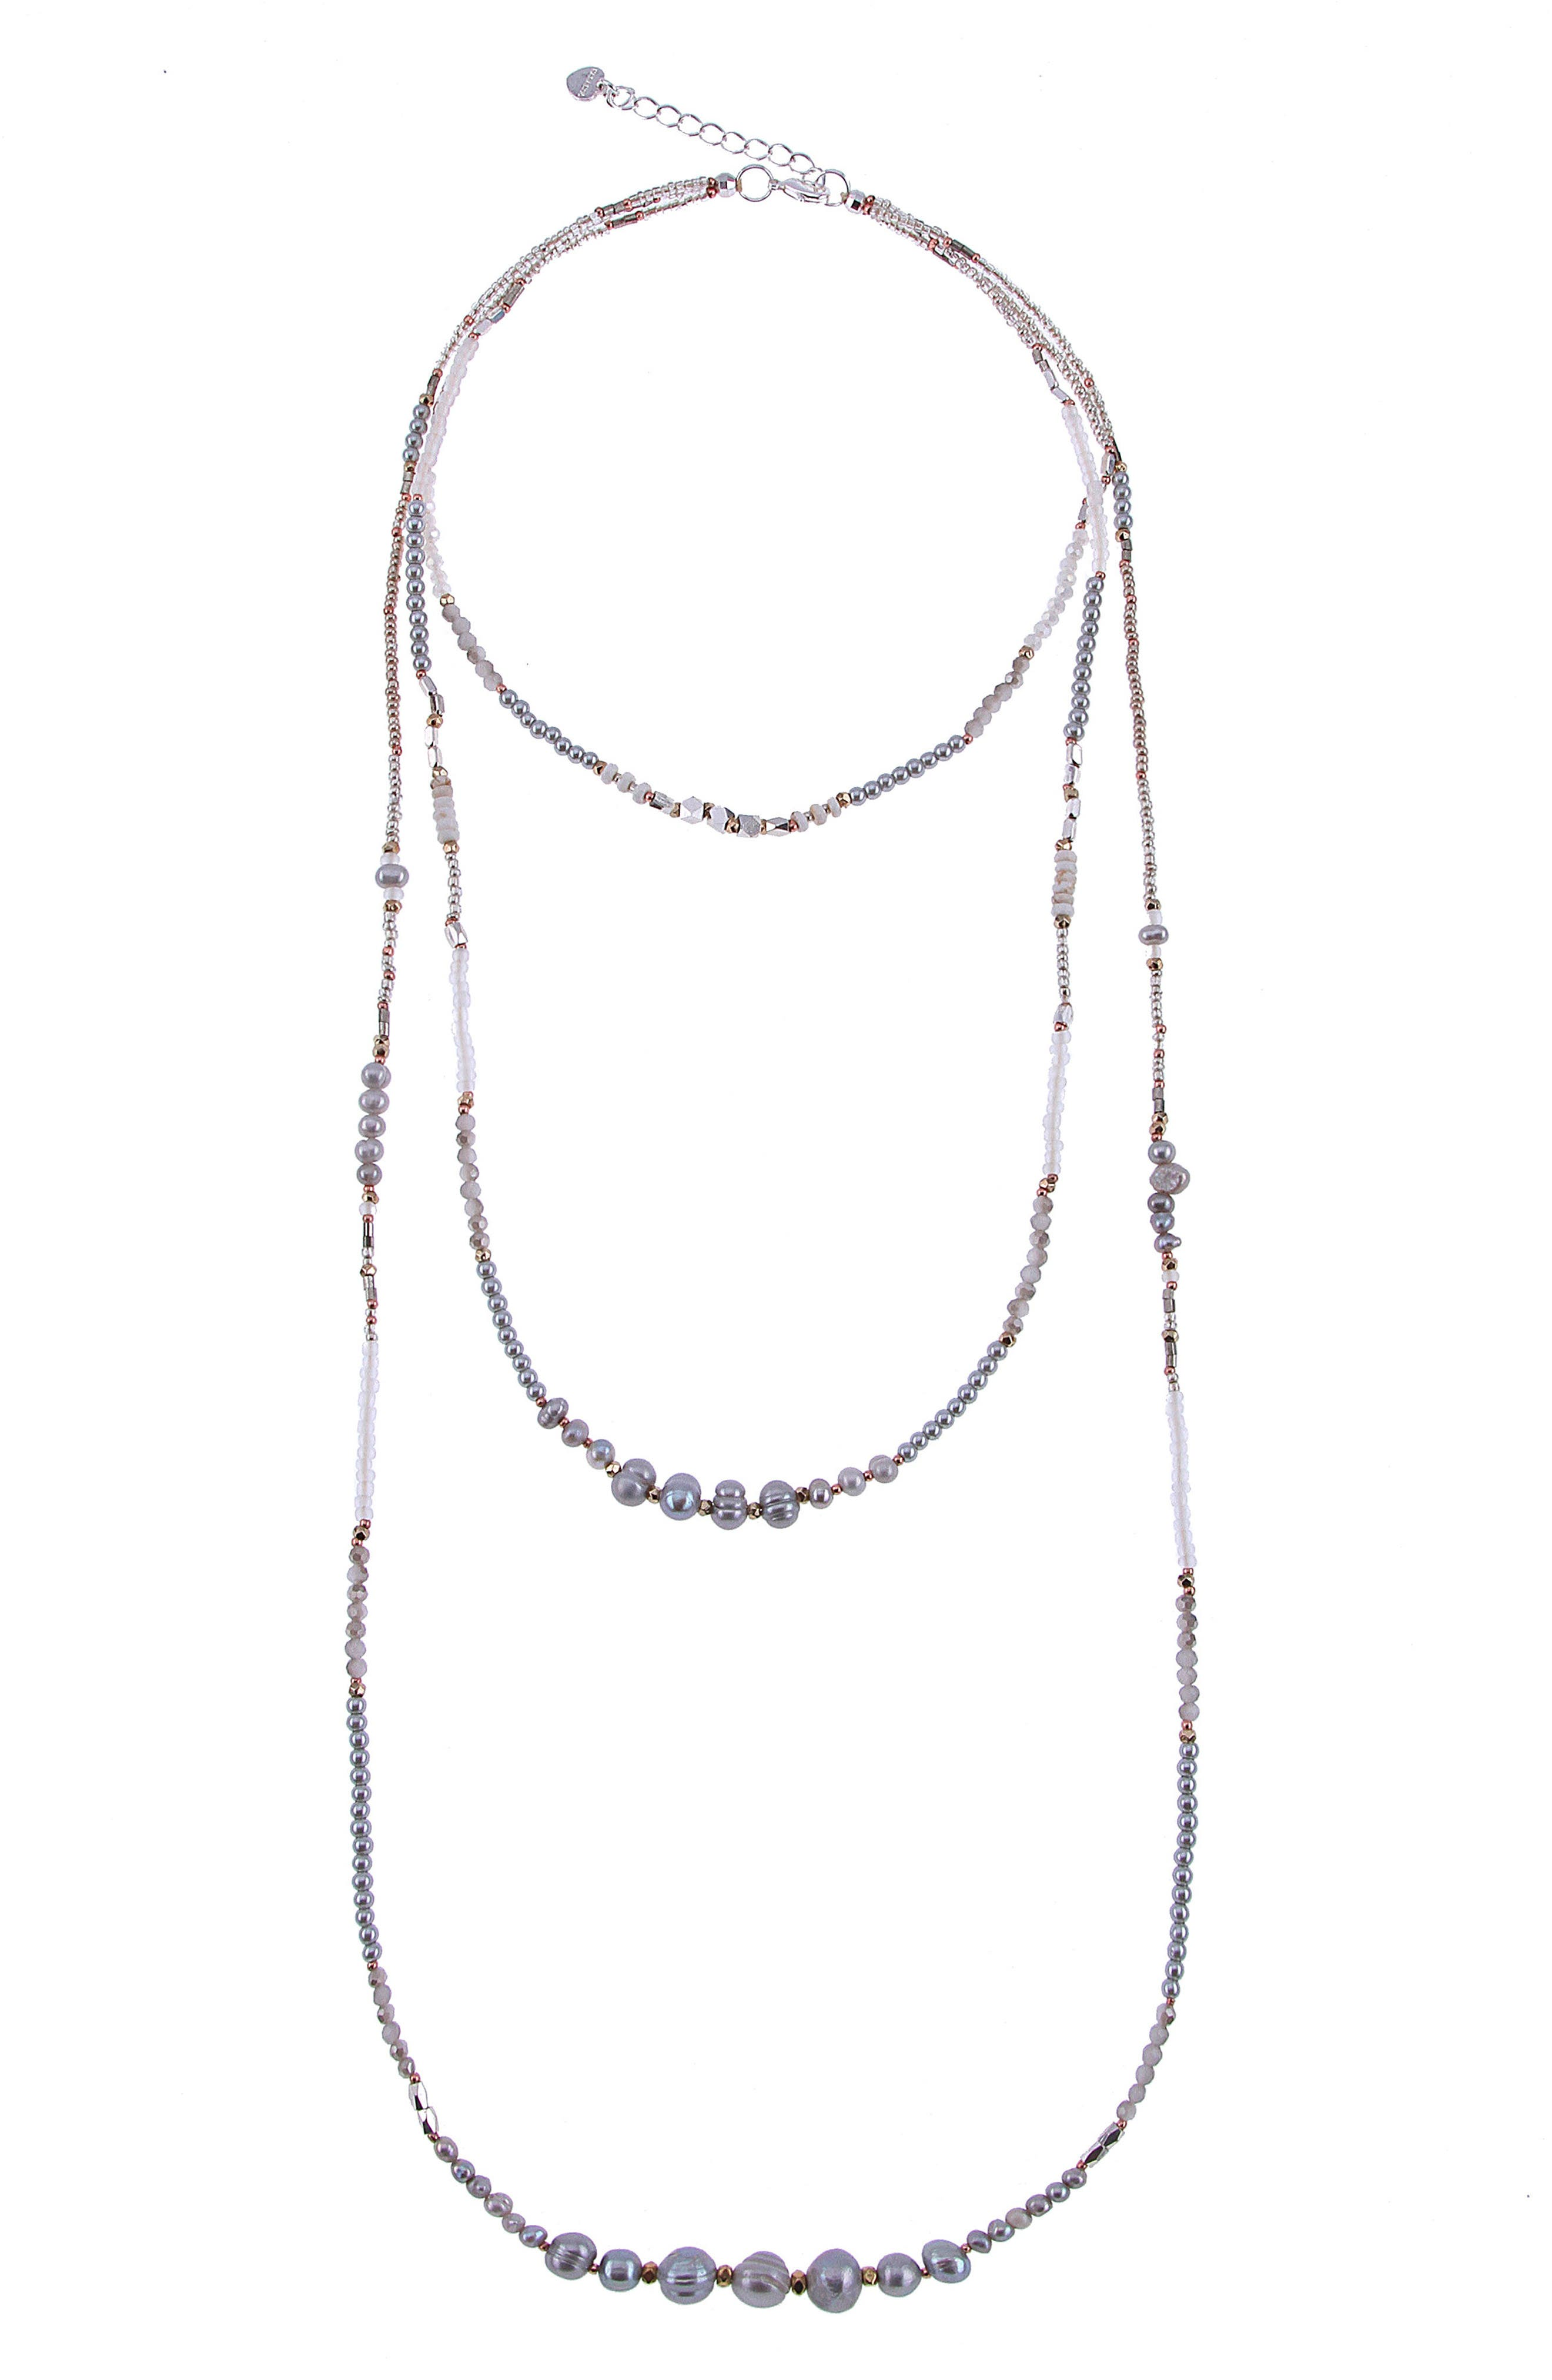 Triple Strand Beaded Freshwater Pearl Necklace,                             Main thumbnail 1, color,                             040